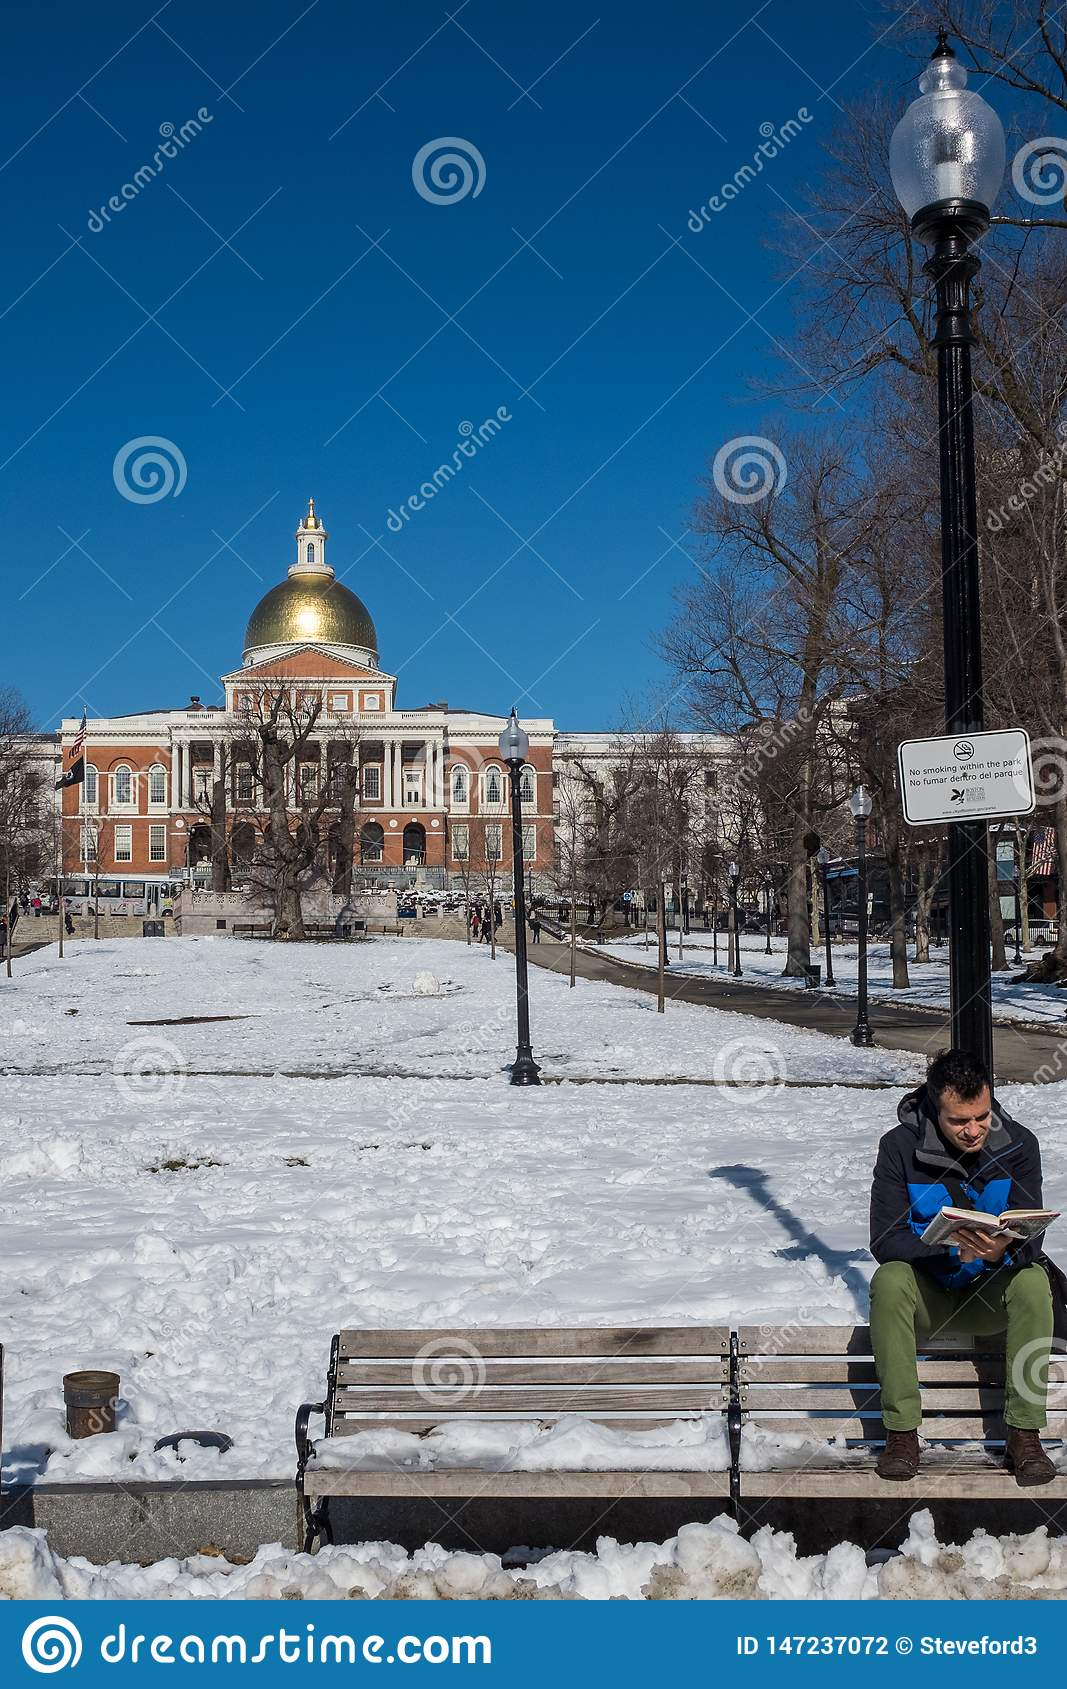 Boston, MA, USA, February, 8, 2016: A Young Man Perches On